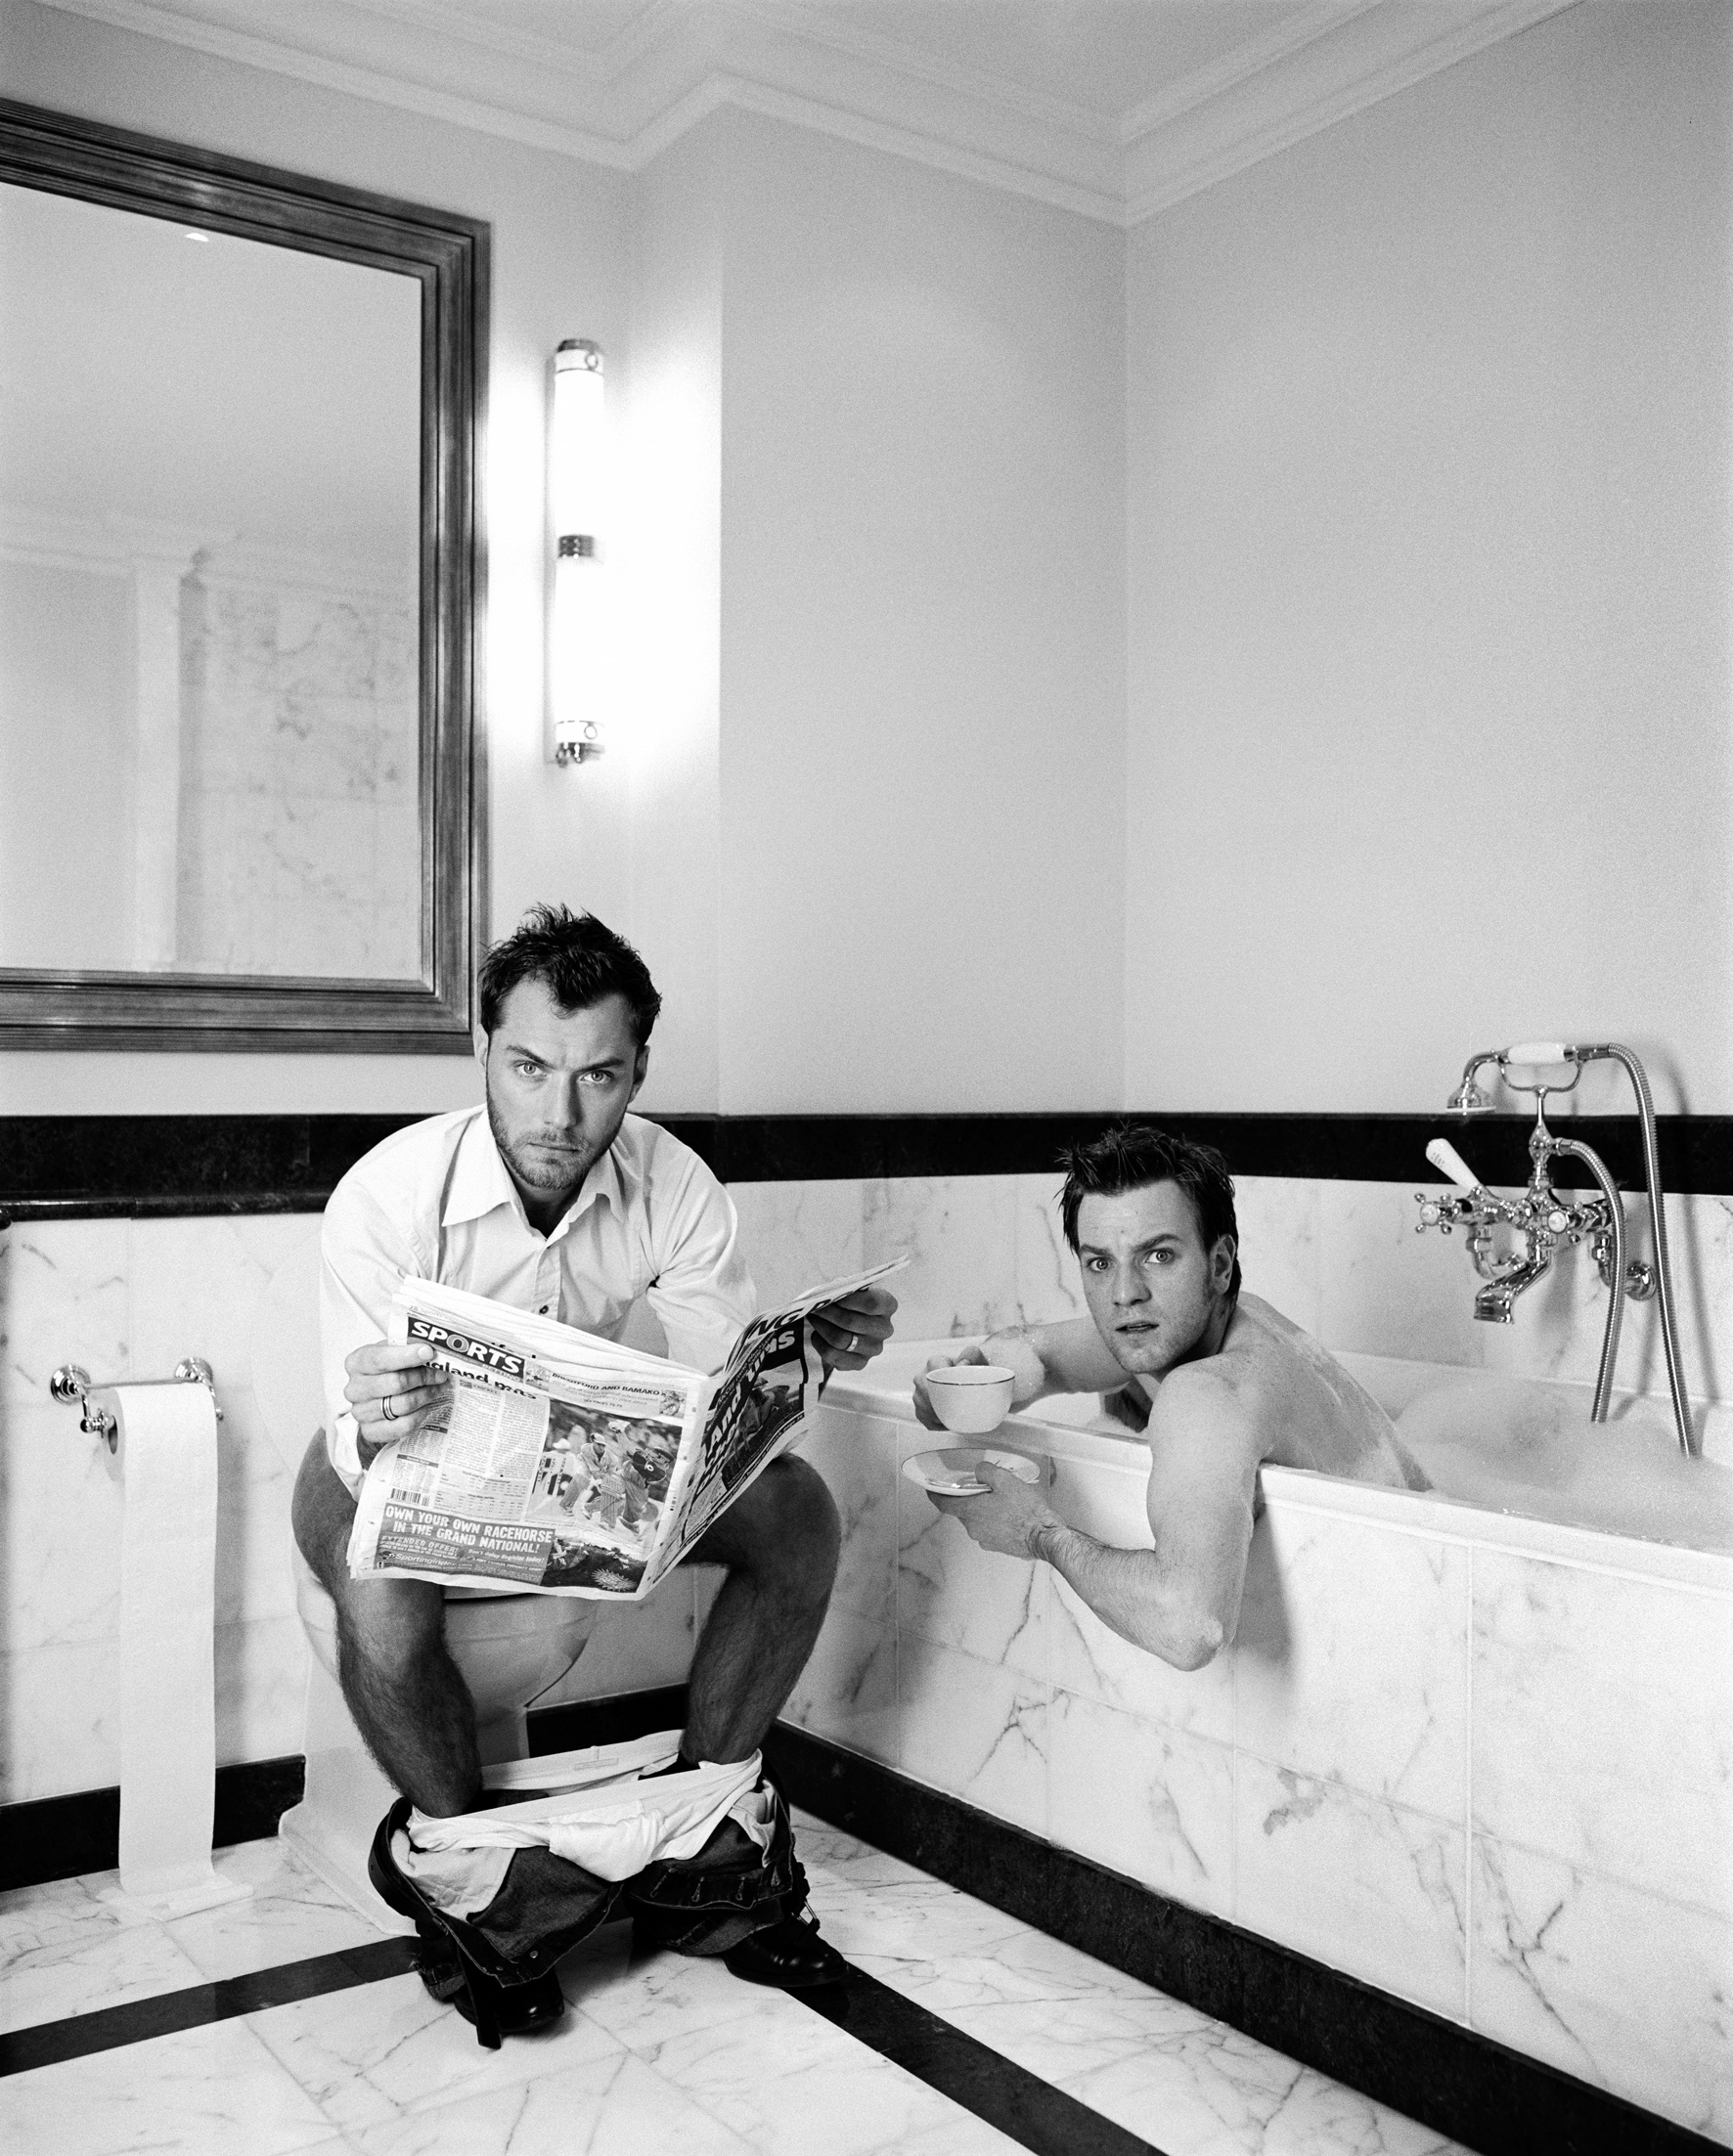 Lorenzo Agius, Jude and Ewan in the bathroom, 2003. Courtesy of Alon Zakaim Fine Art and the artist